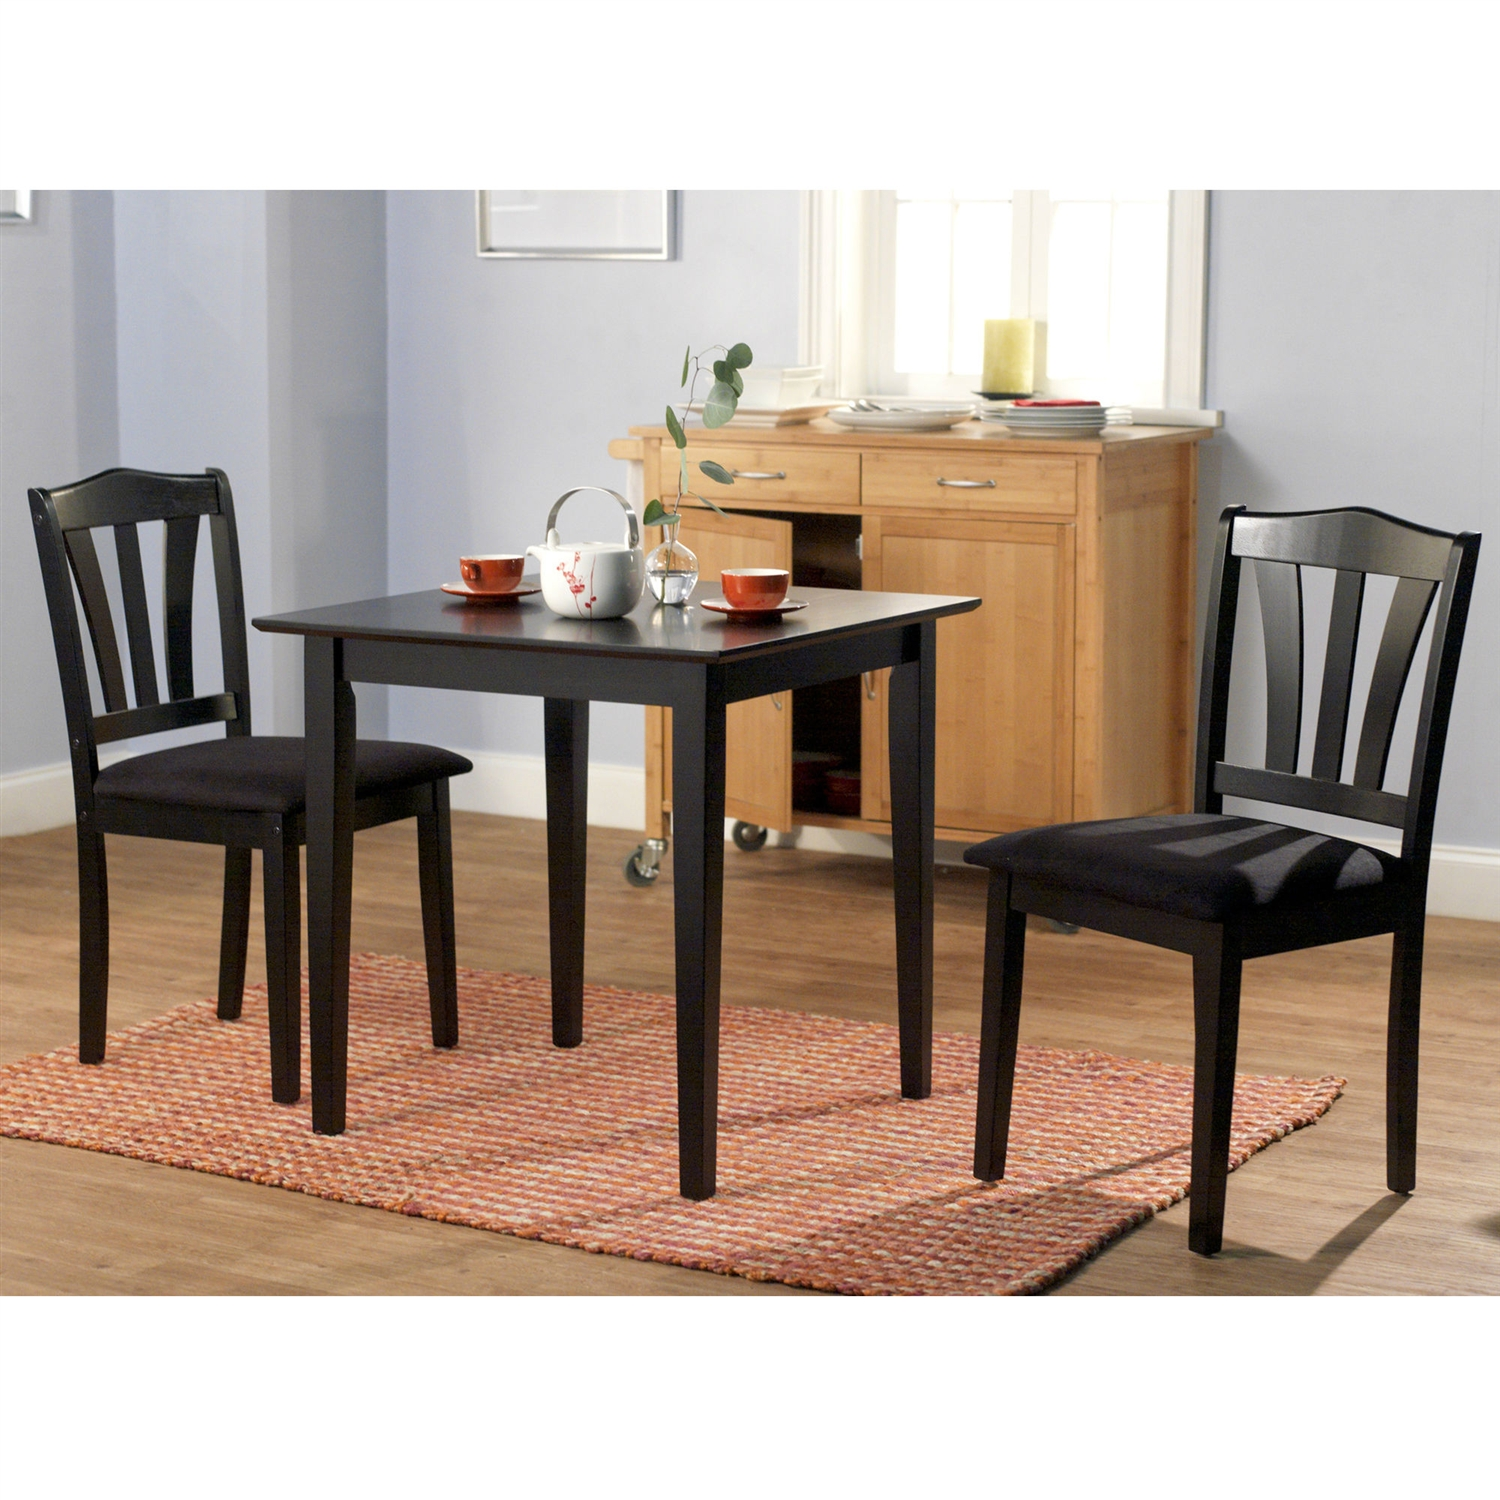 Dining Table With Two Chairs: 3-Piece Wood Dining Set With Square Table And 2 Chairs In